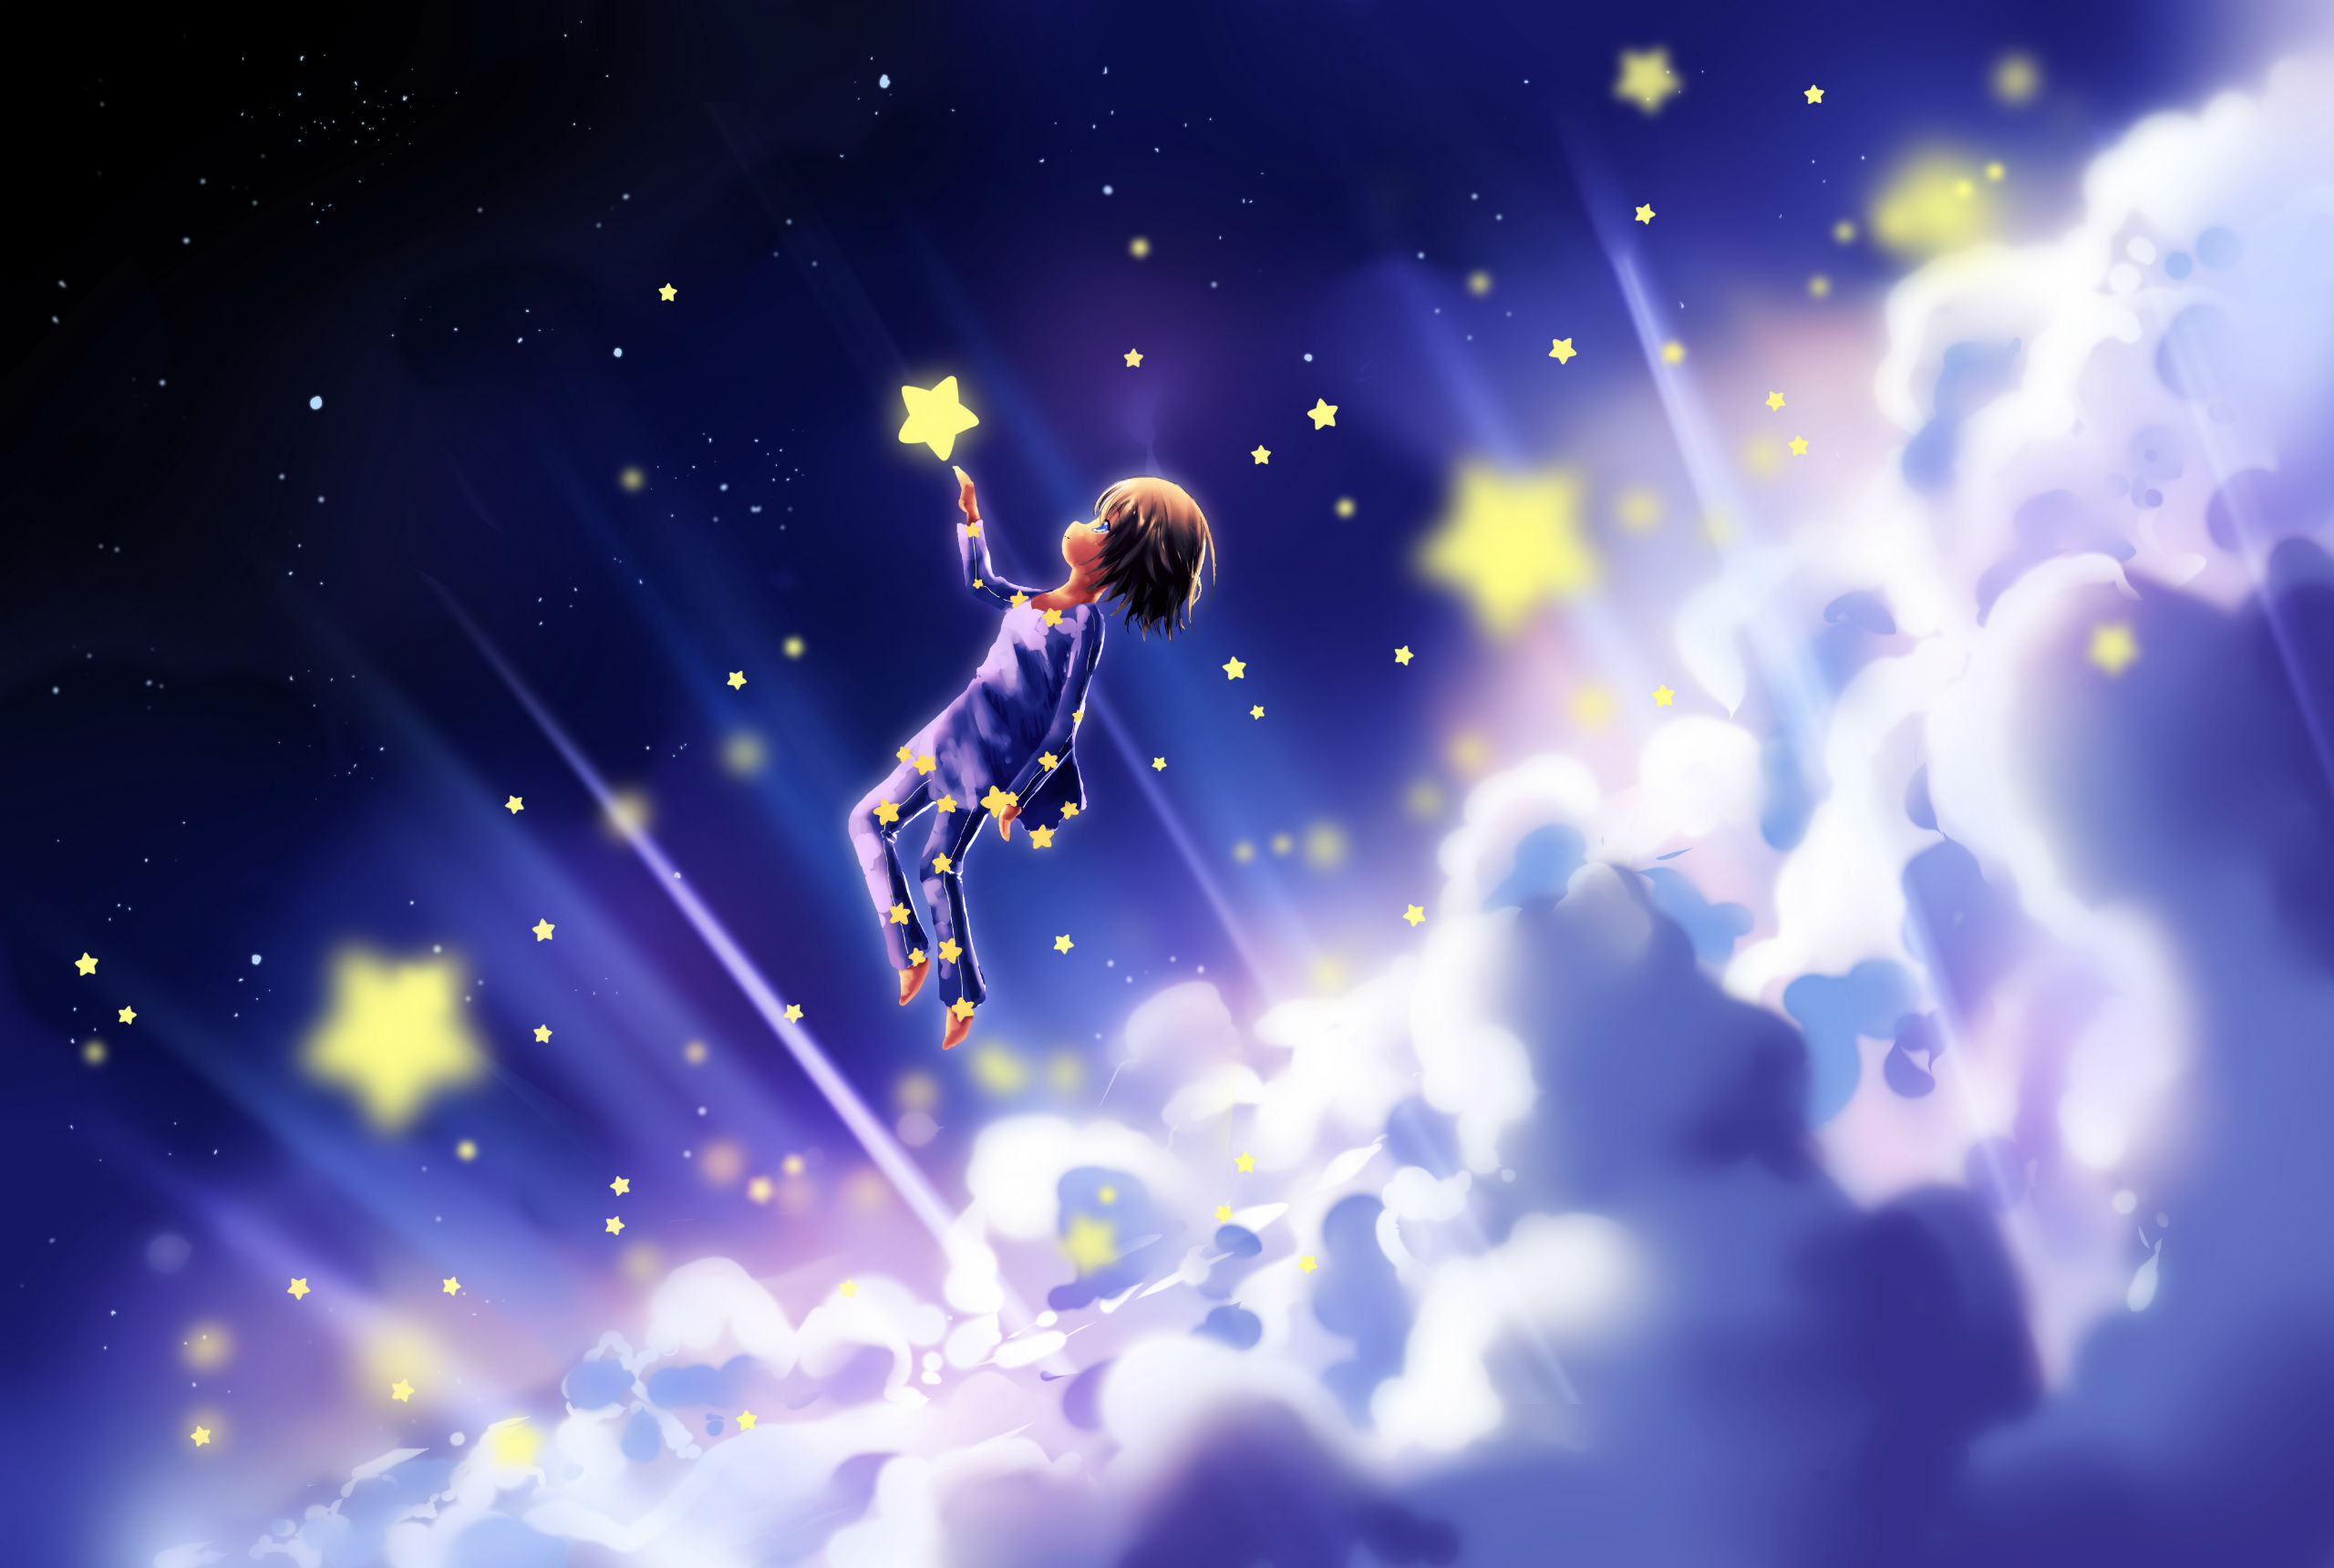 Dream Fantasy Wallpaper Fantasy Art Sky Stars Children